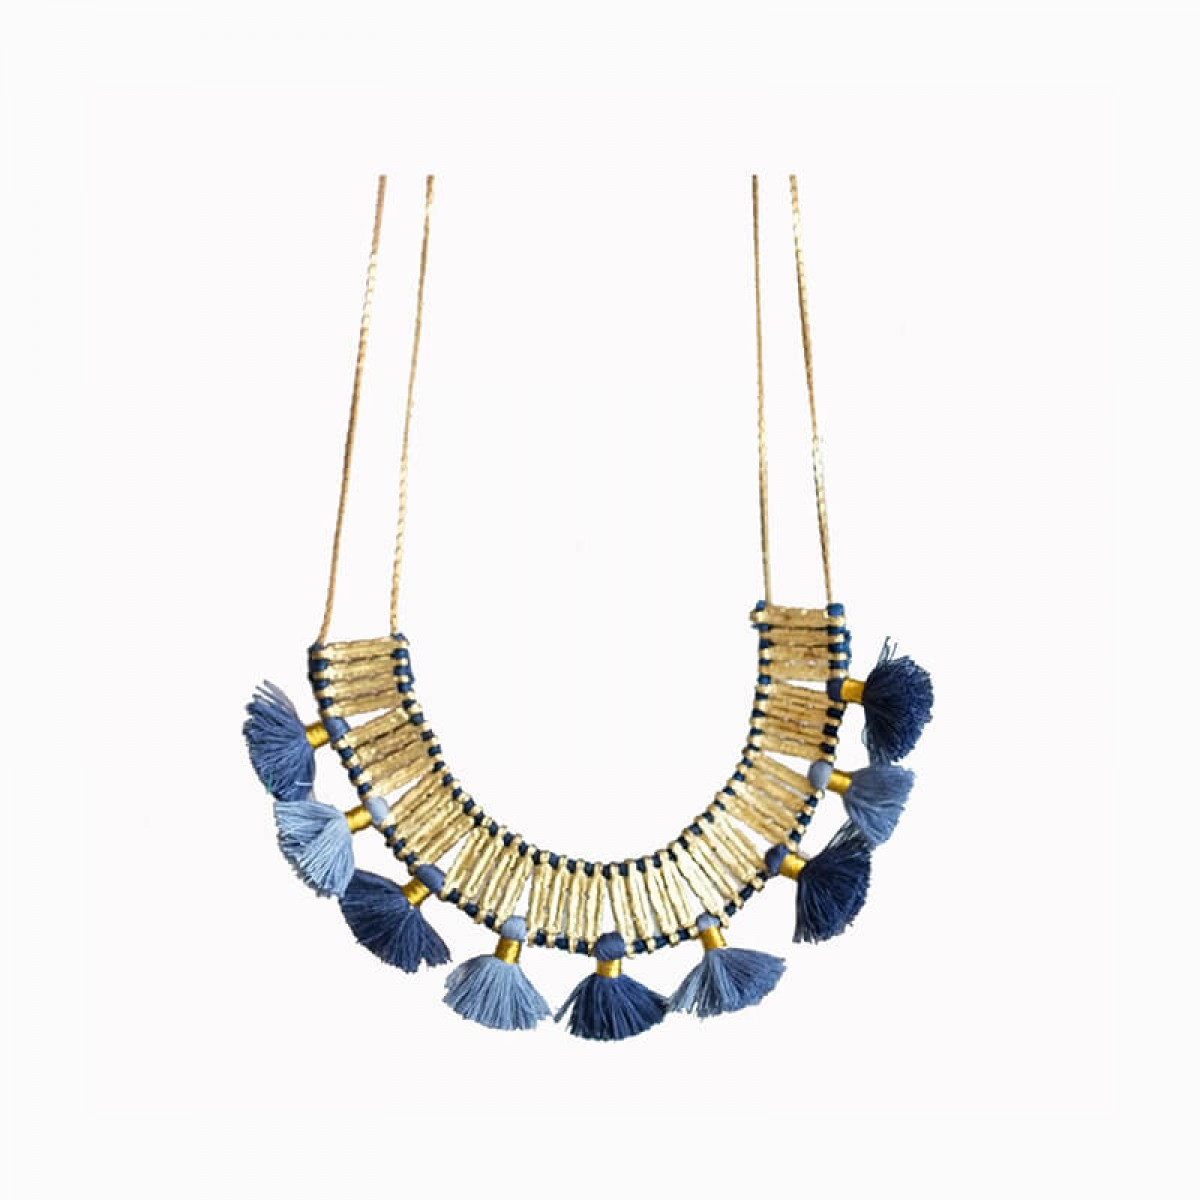 Bohemian Metal Tassel Necklace - Blue